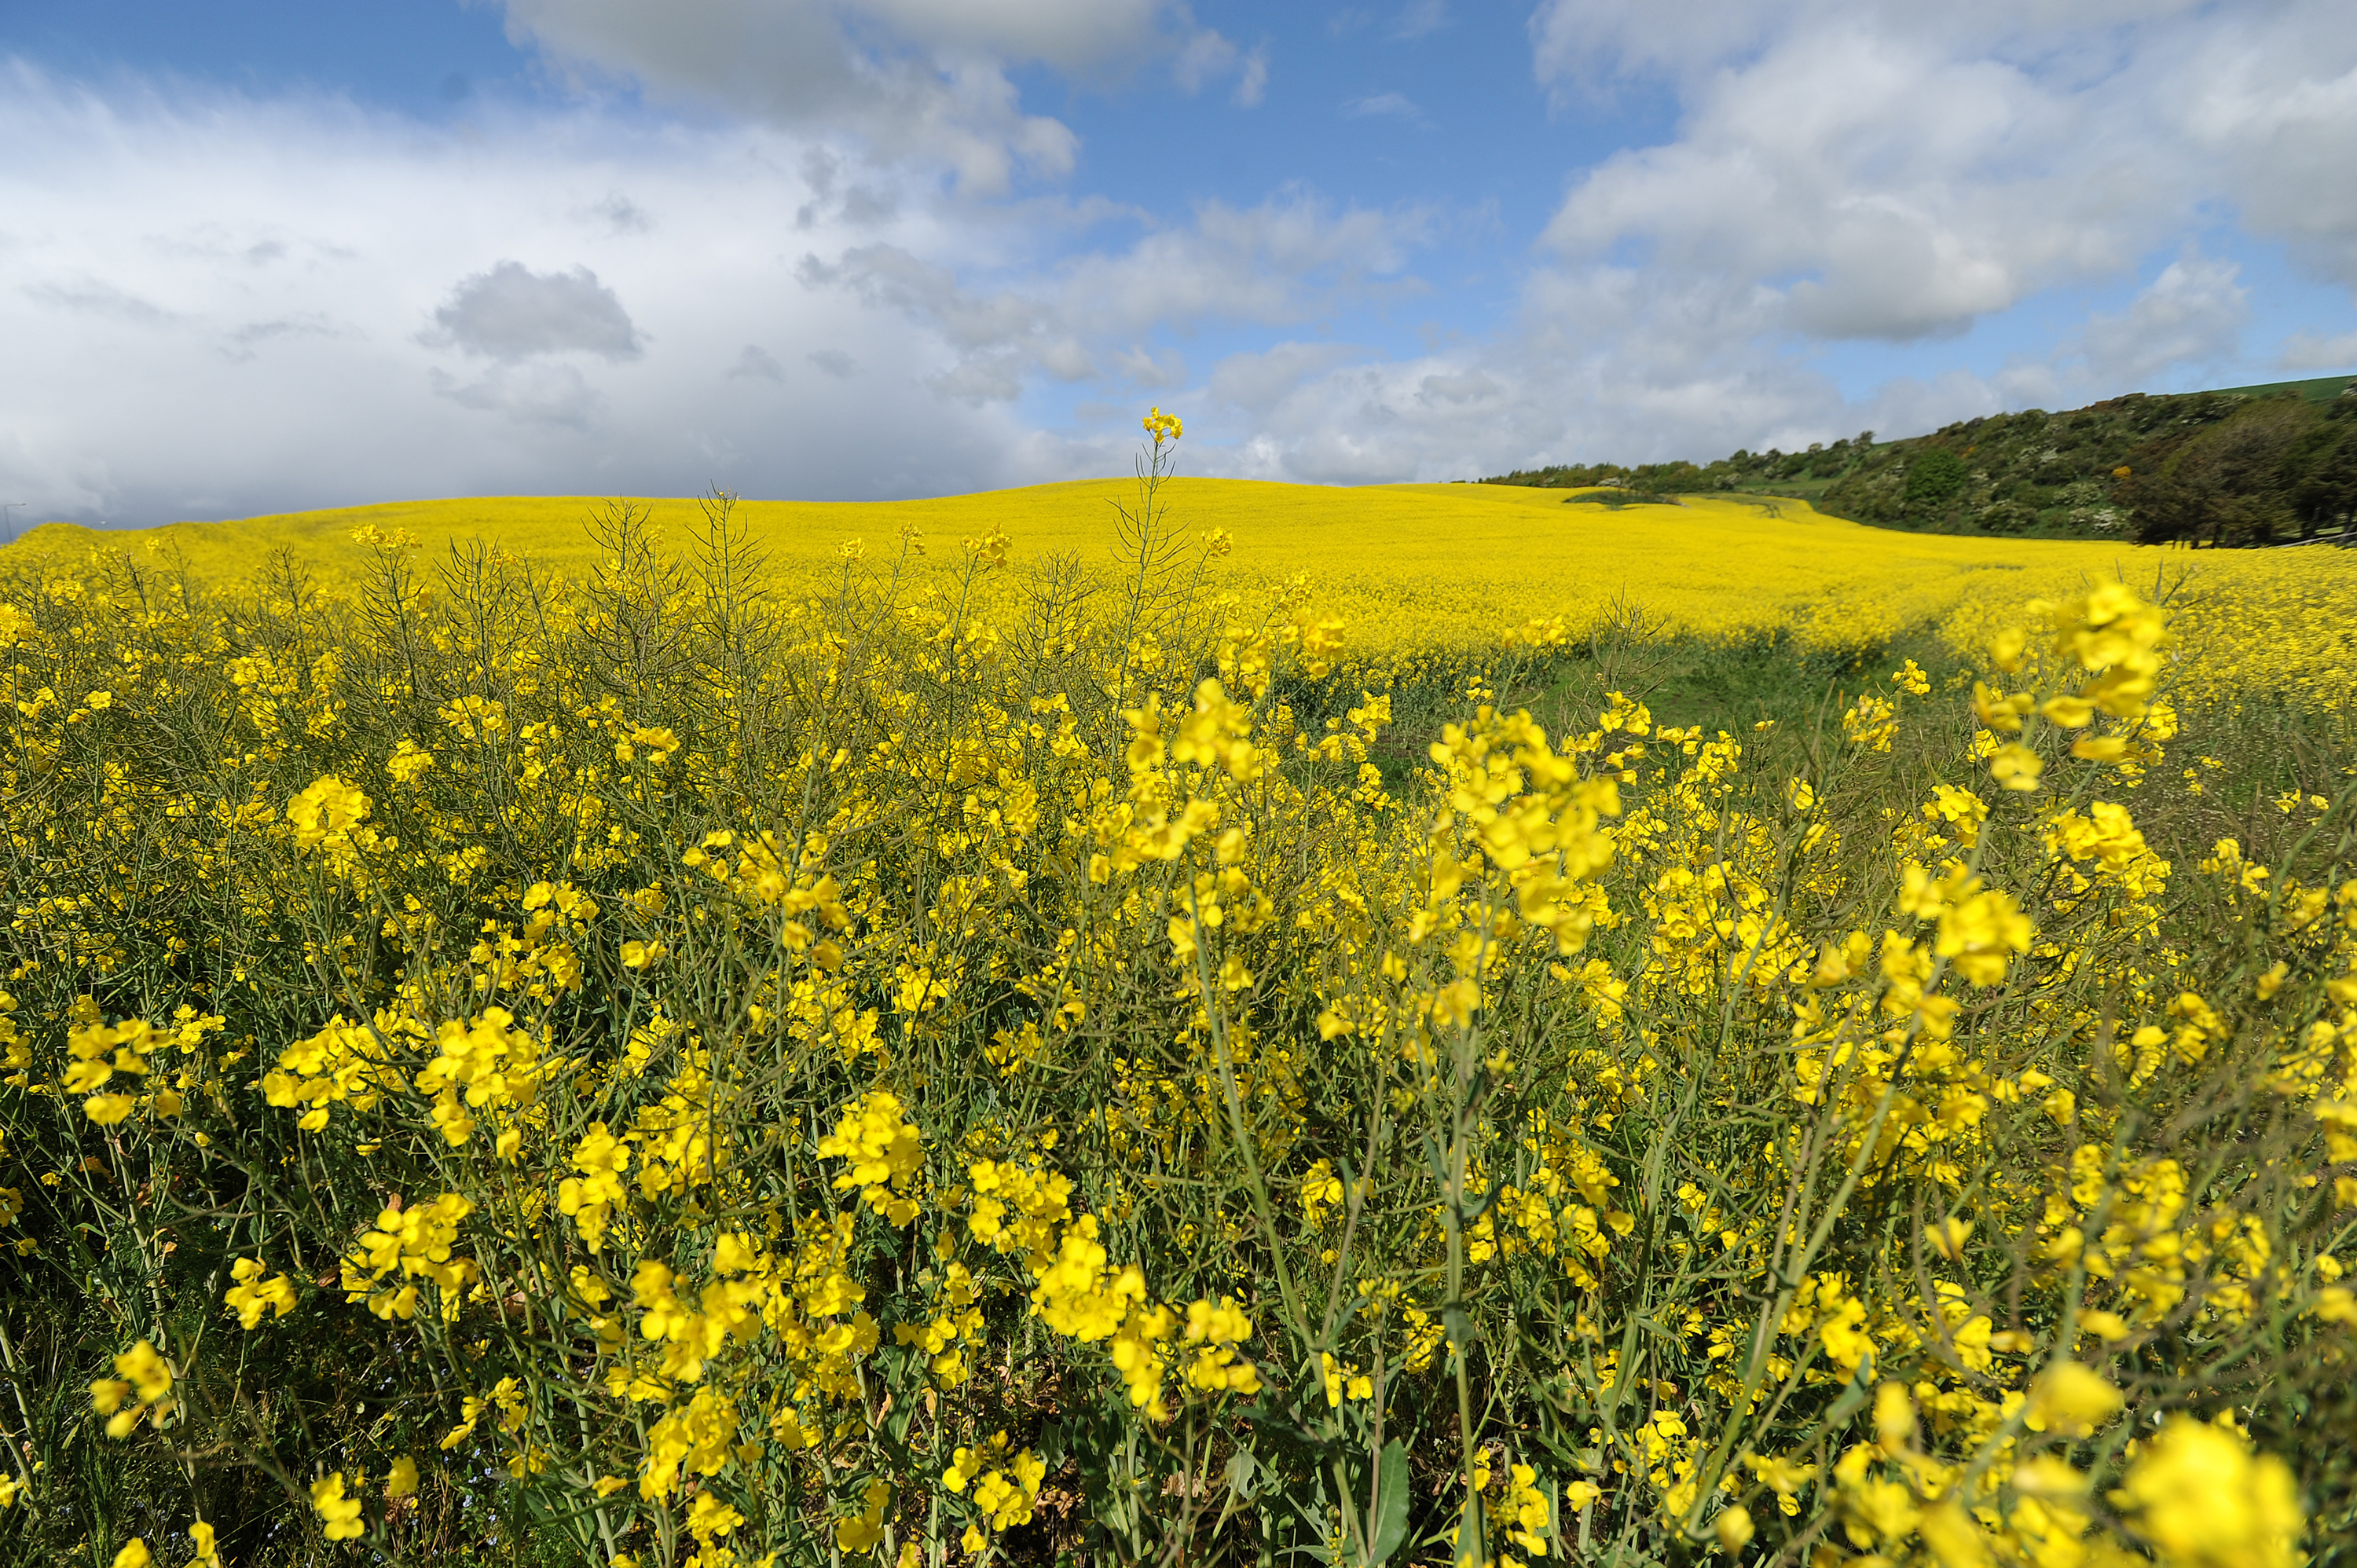 NFU is committed to campaigning for emergency use of neonicotinoid